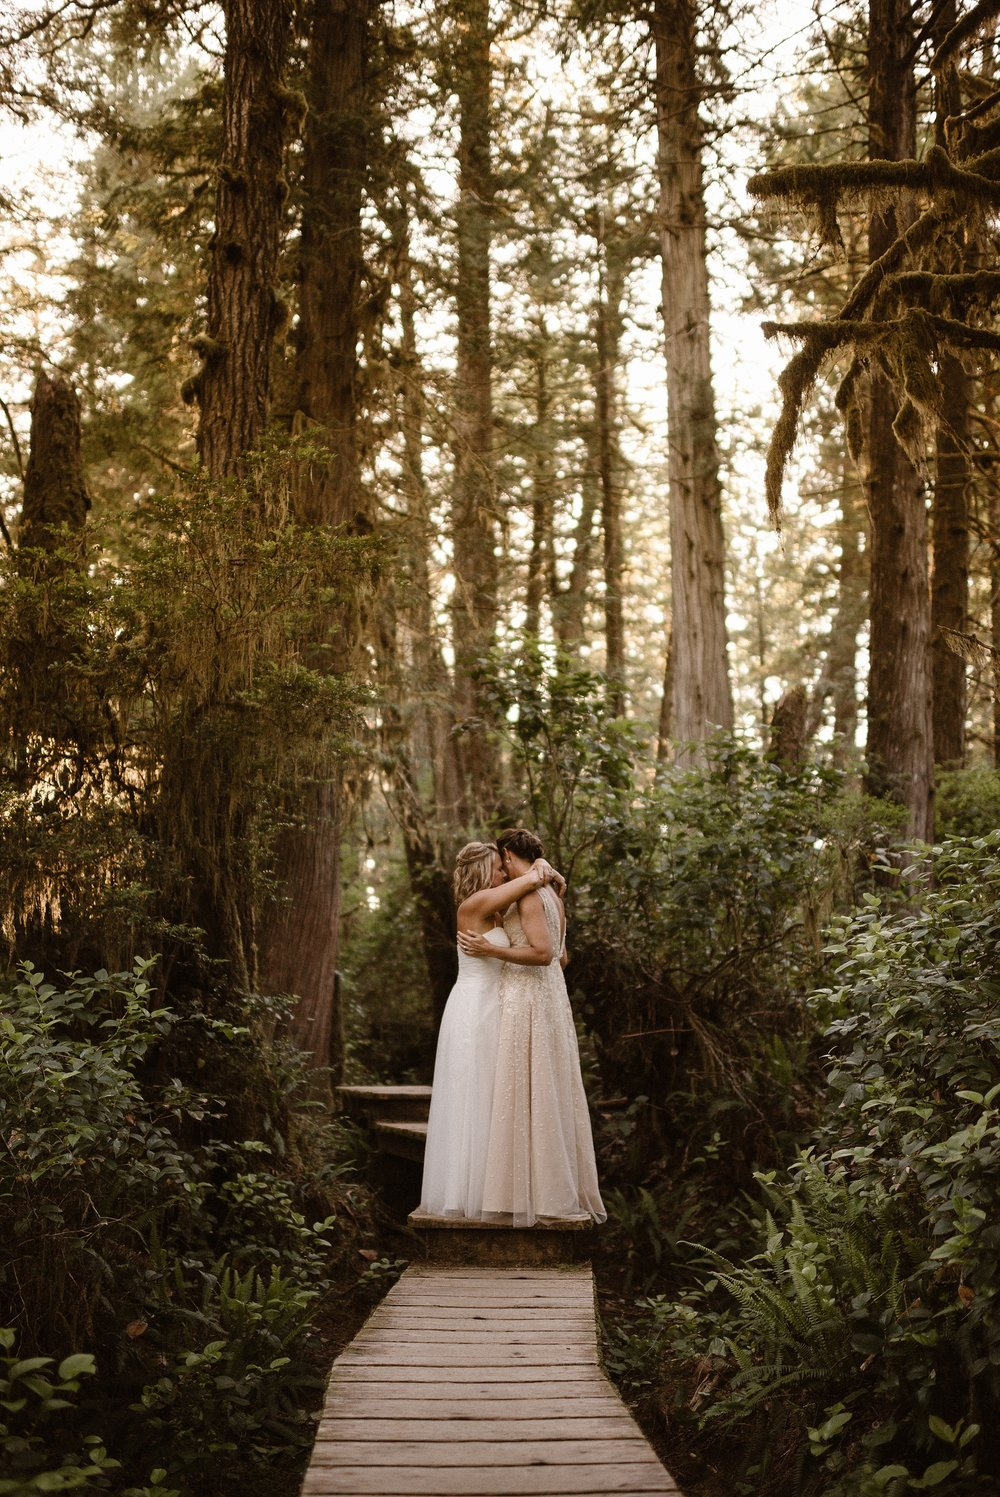 Two brides, both in long wedding dresses, embrace on a wooded walkway with dark, old-growth trees towering around them. Thick, lush foliage, a common feature of the PNW, surrounds the couple in this photo captured by Pacific Northwest photographer Adventure Instead.